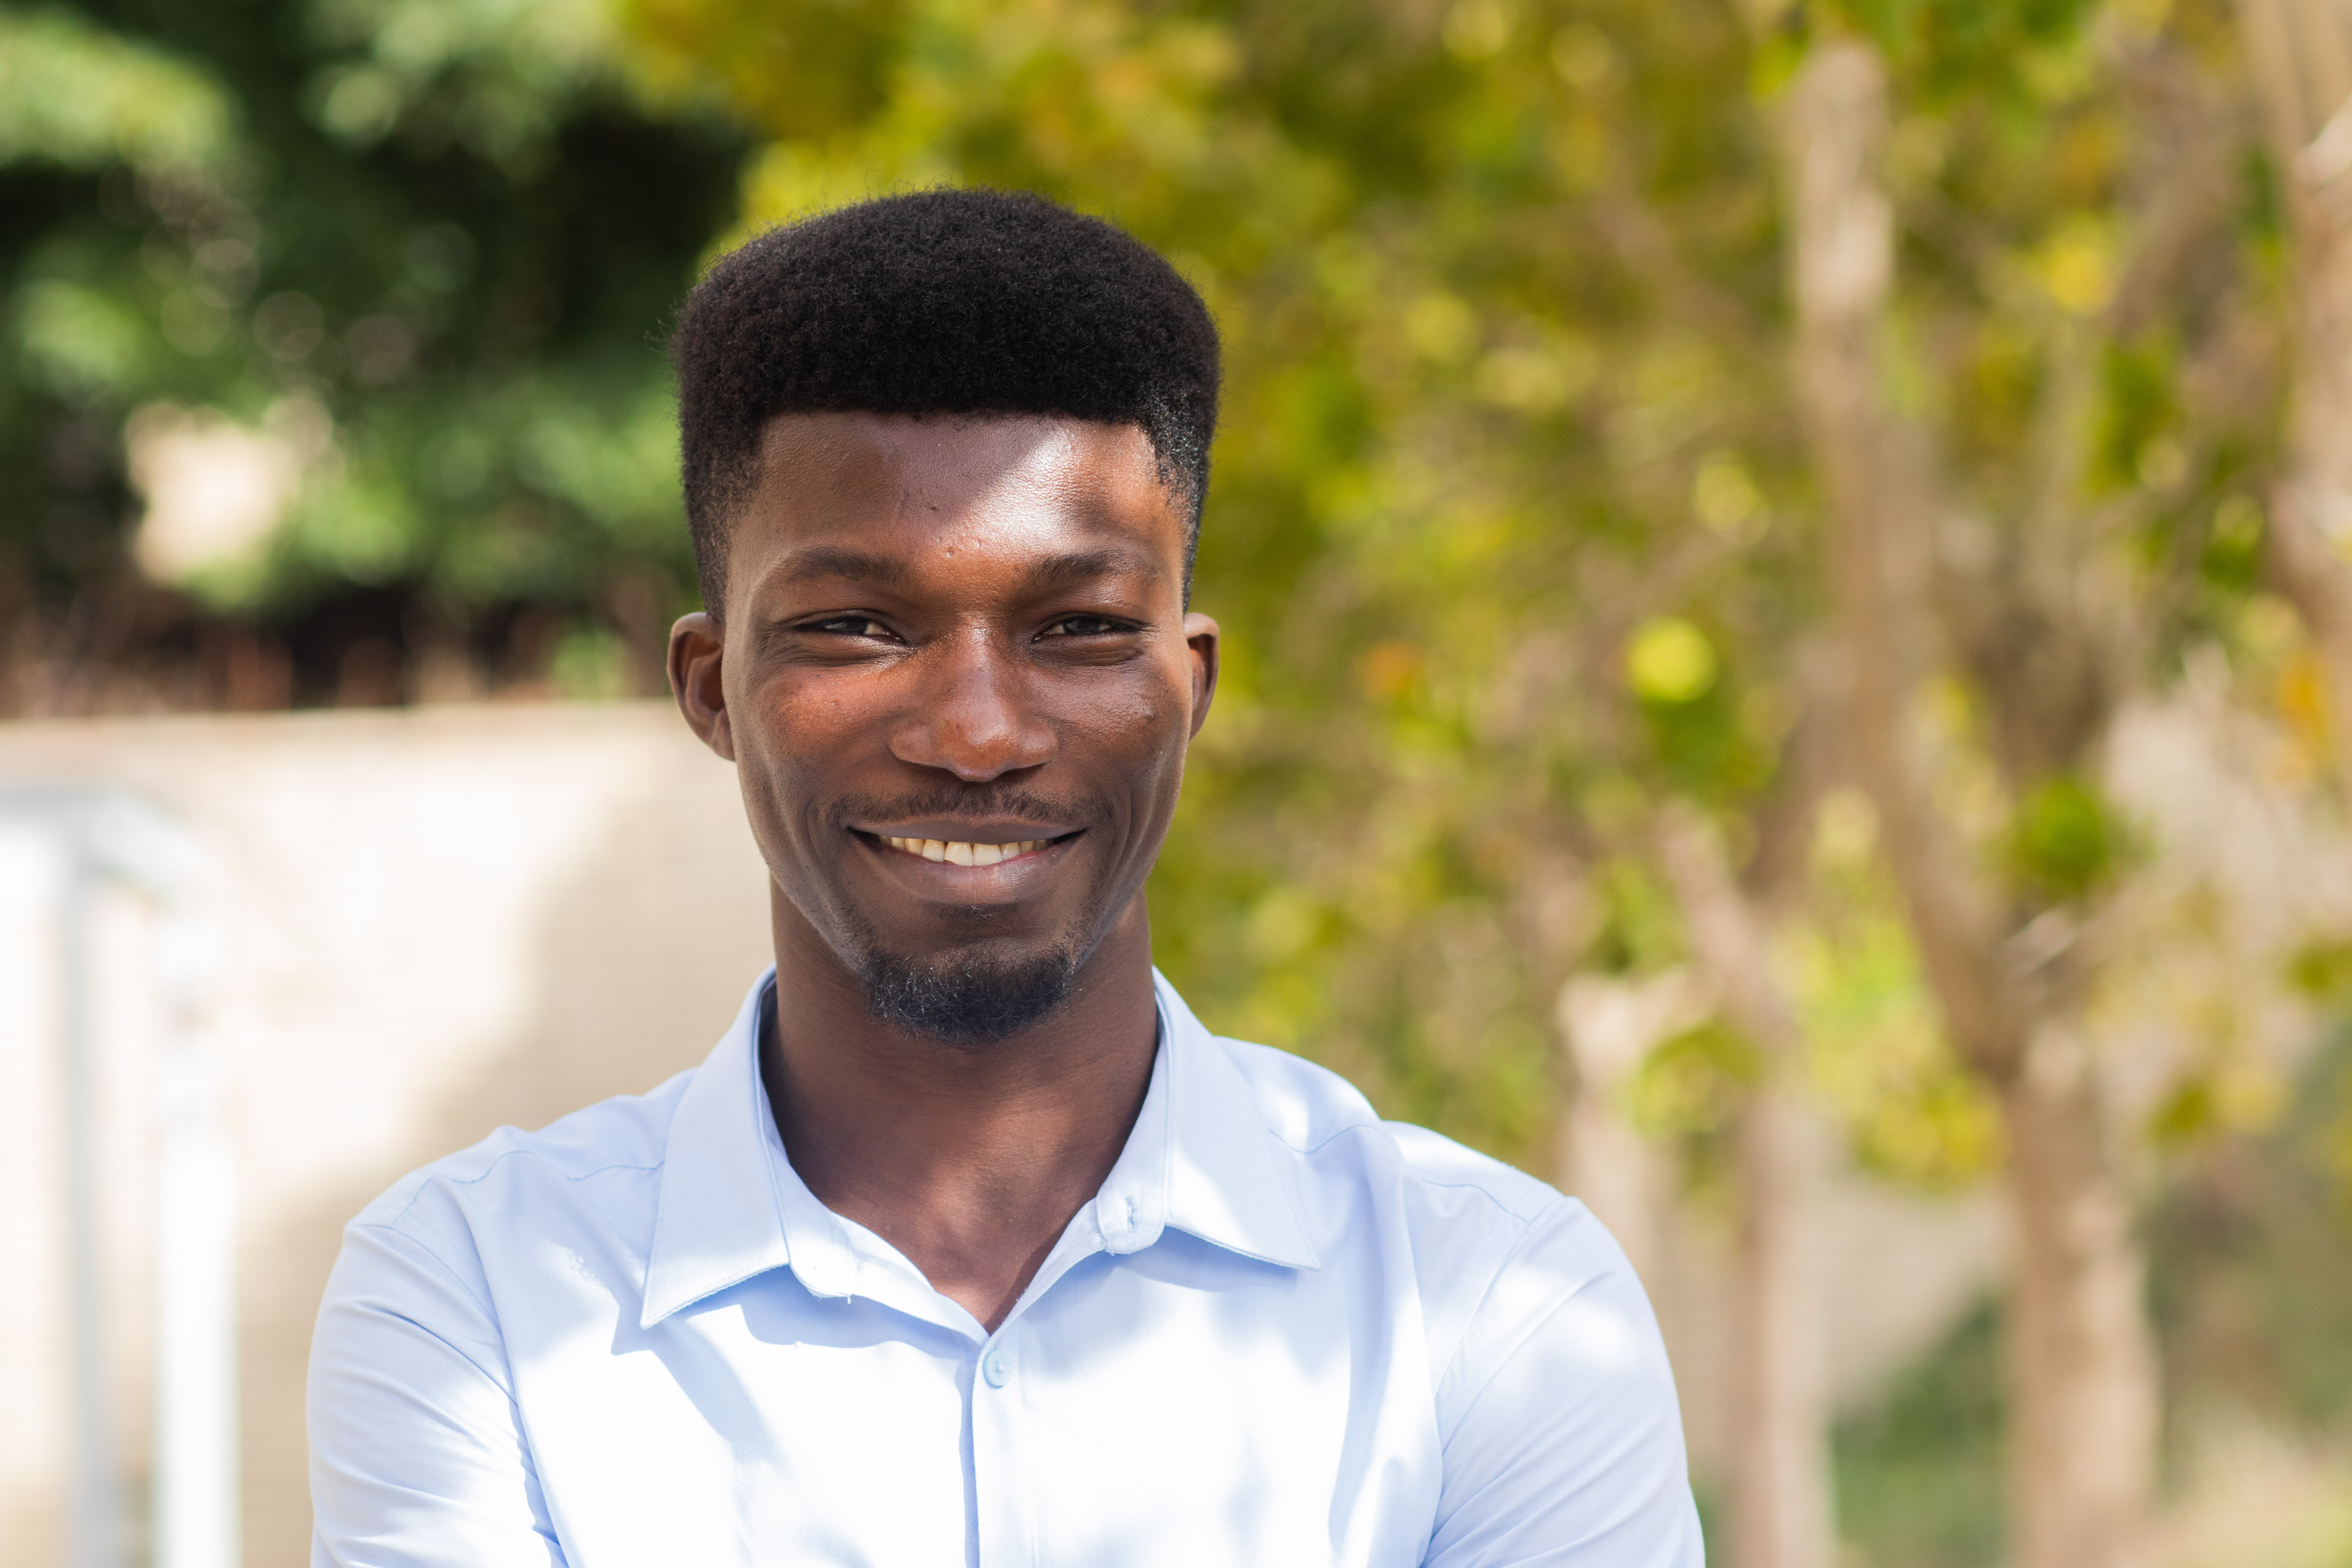 UCT Yale-Fox Fellow 2018/19 Elkanah Babatunde